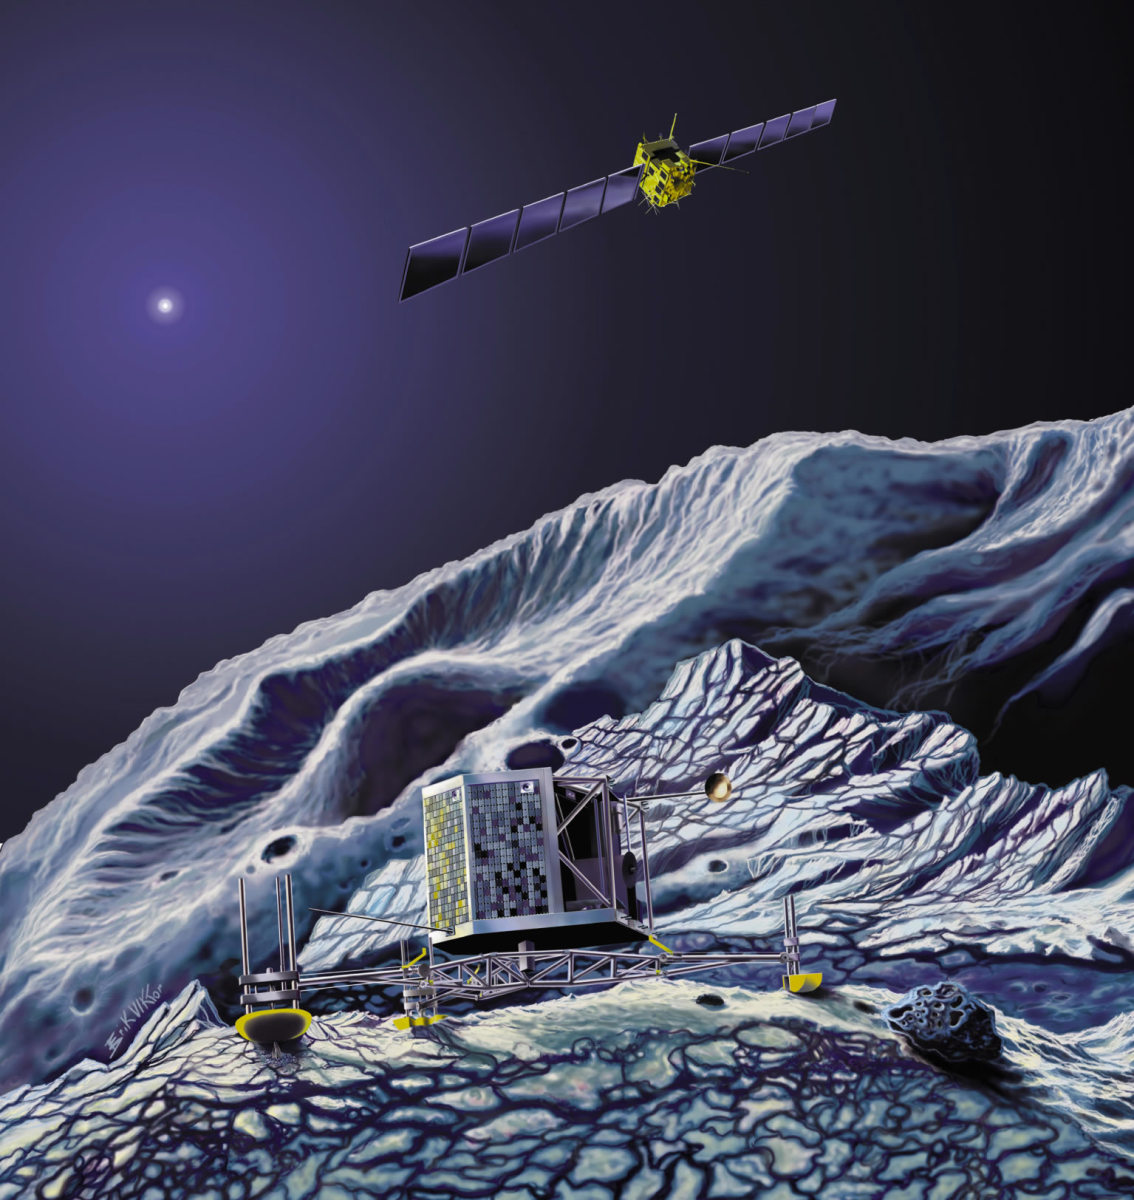 The Rosetta Space Craft and the Mission to Comet 67P/Churyumov-Gerasimenko